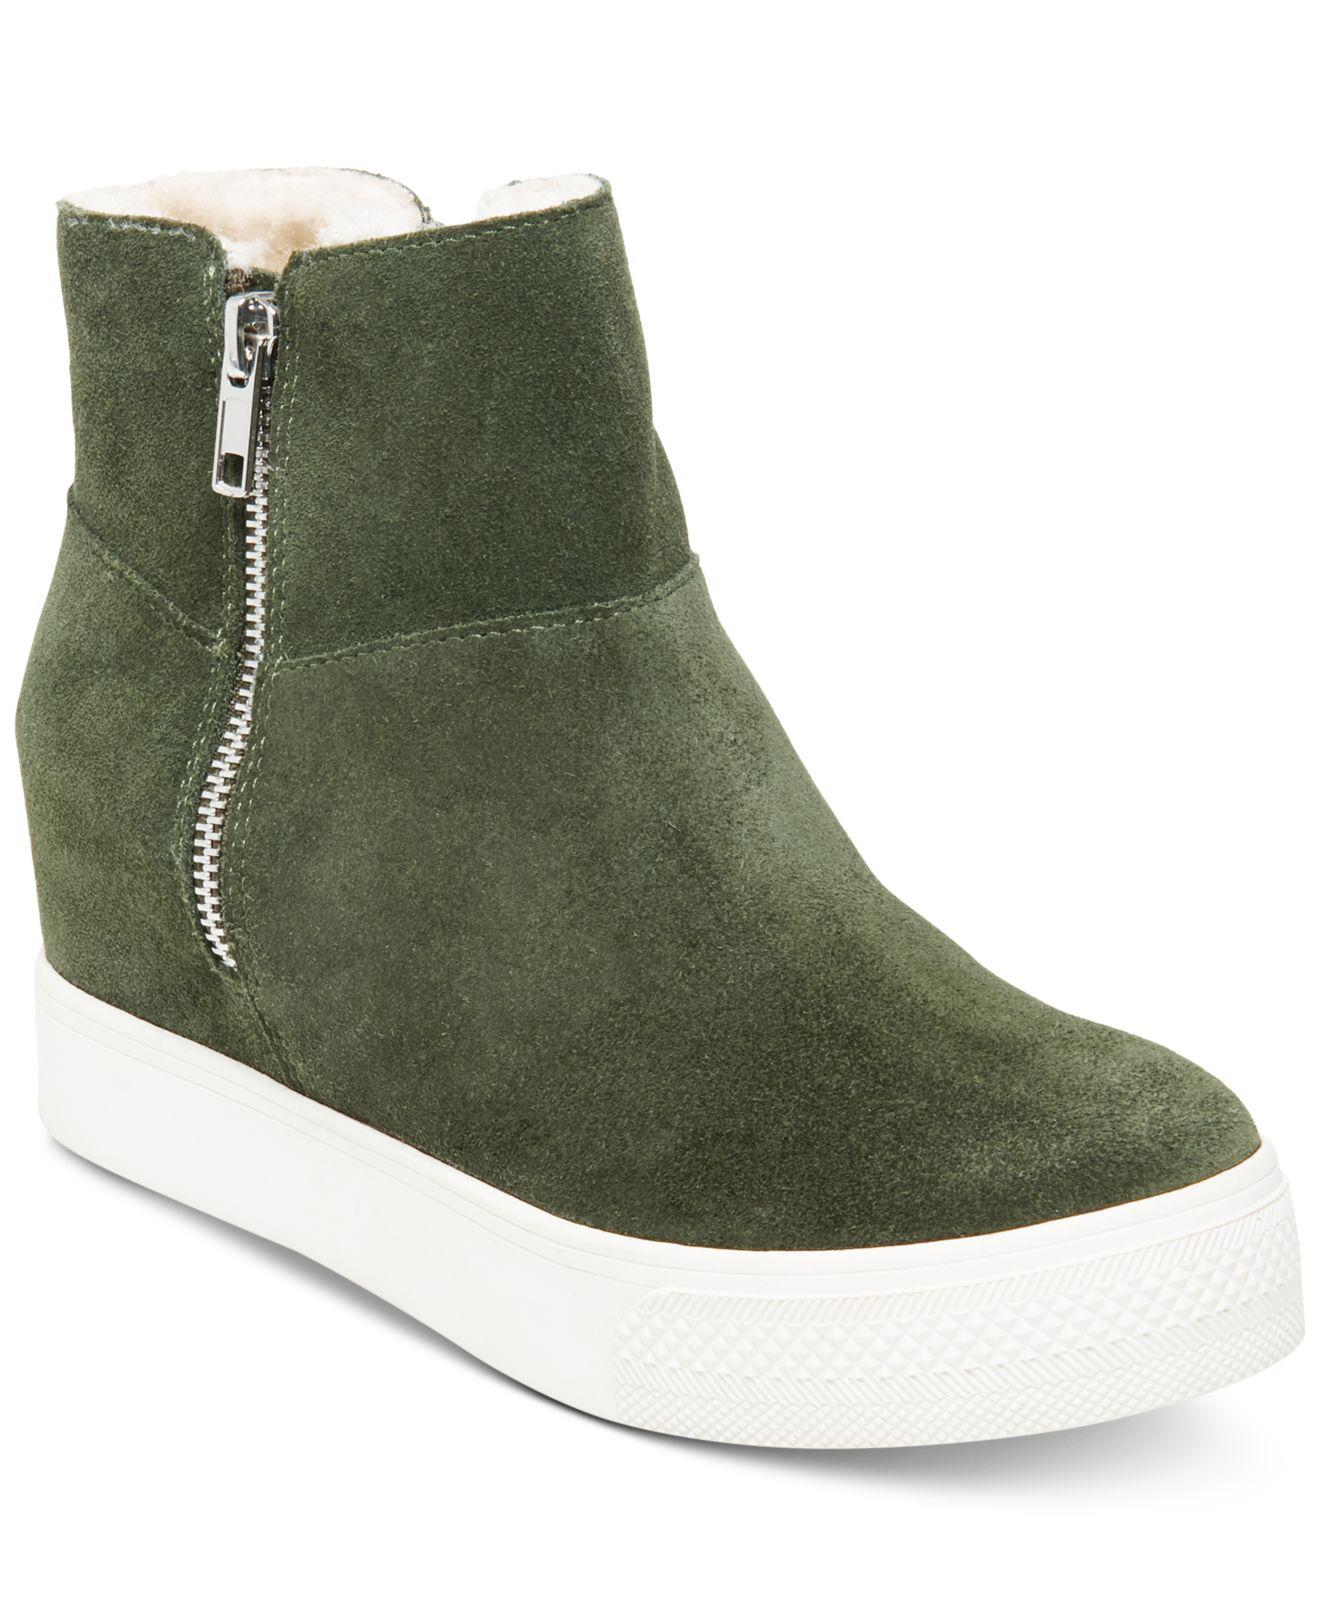 d00a8f957e5 Lyst - Steve Madden Wanda Faux-fur Wedge Sneakers in Green - Save 58%